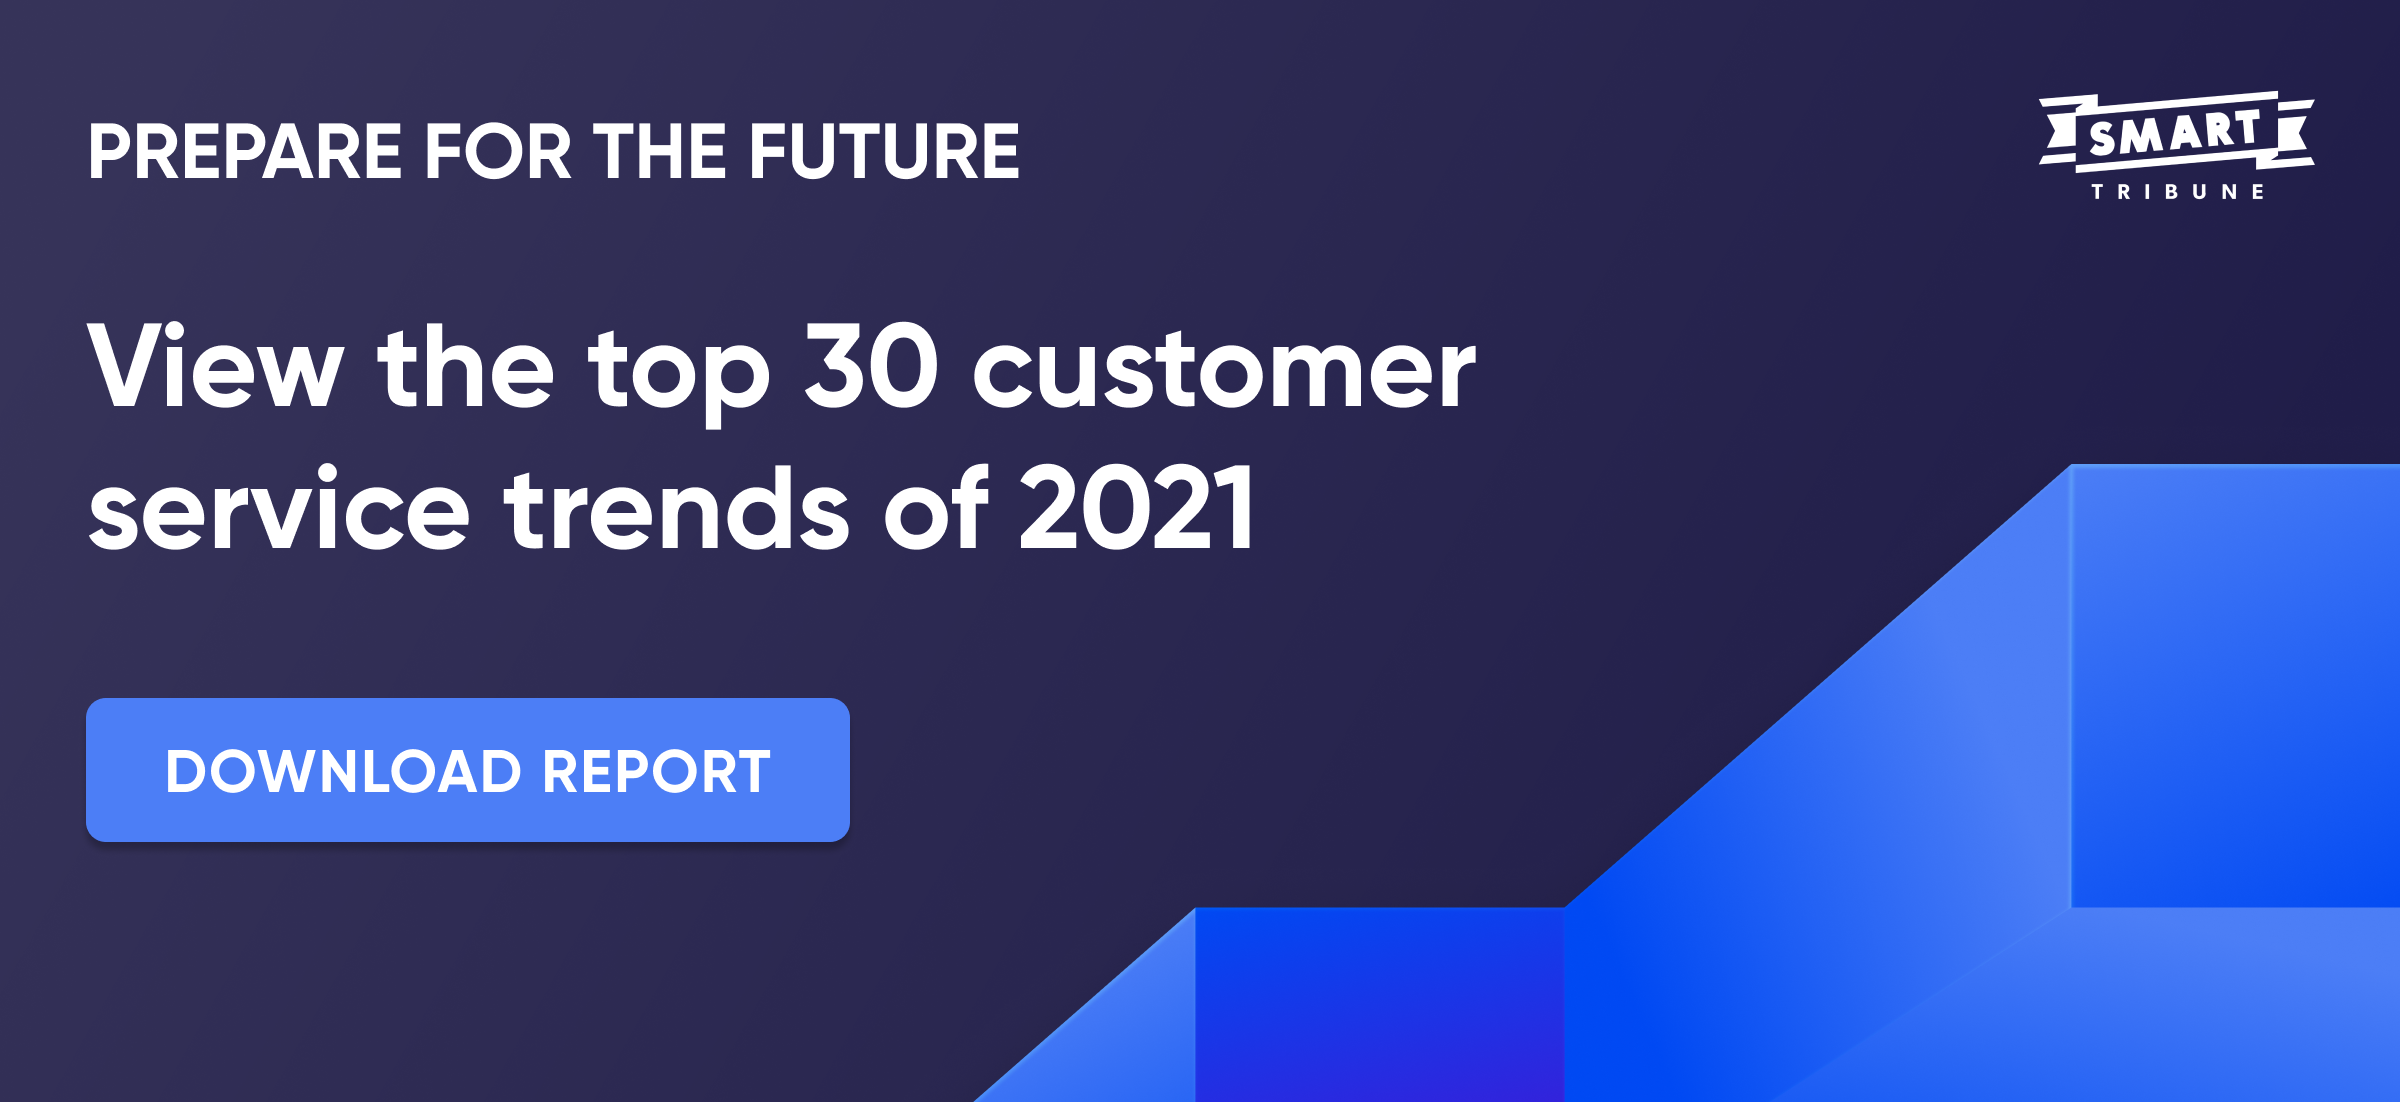 View the top 30 customer service trends of 2021